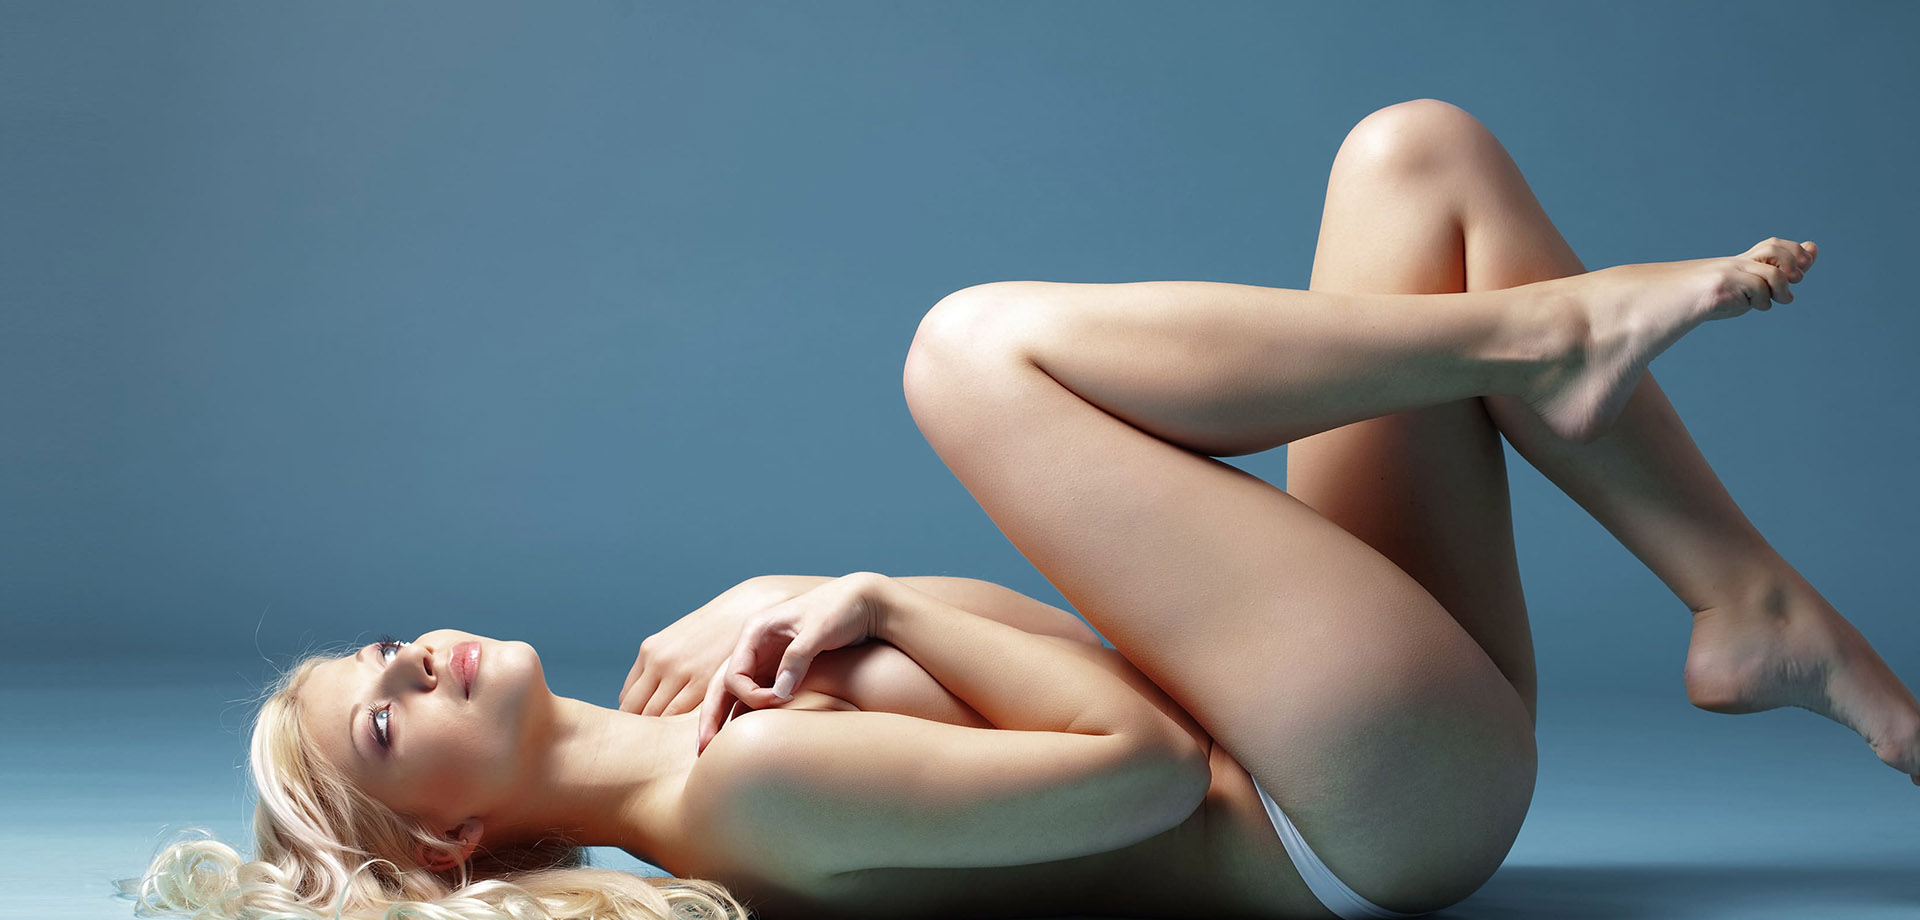 naked Young woman covering her breasts in a lying pose with long blond hair and hair free body.